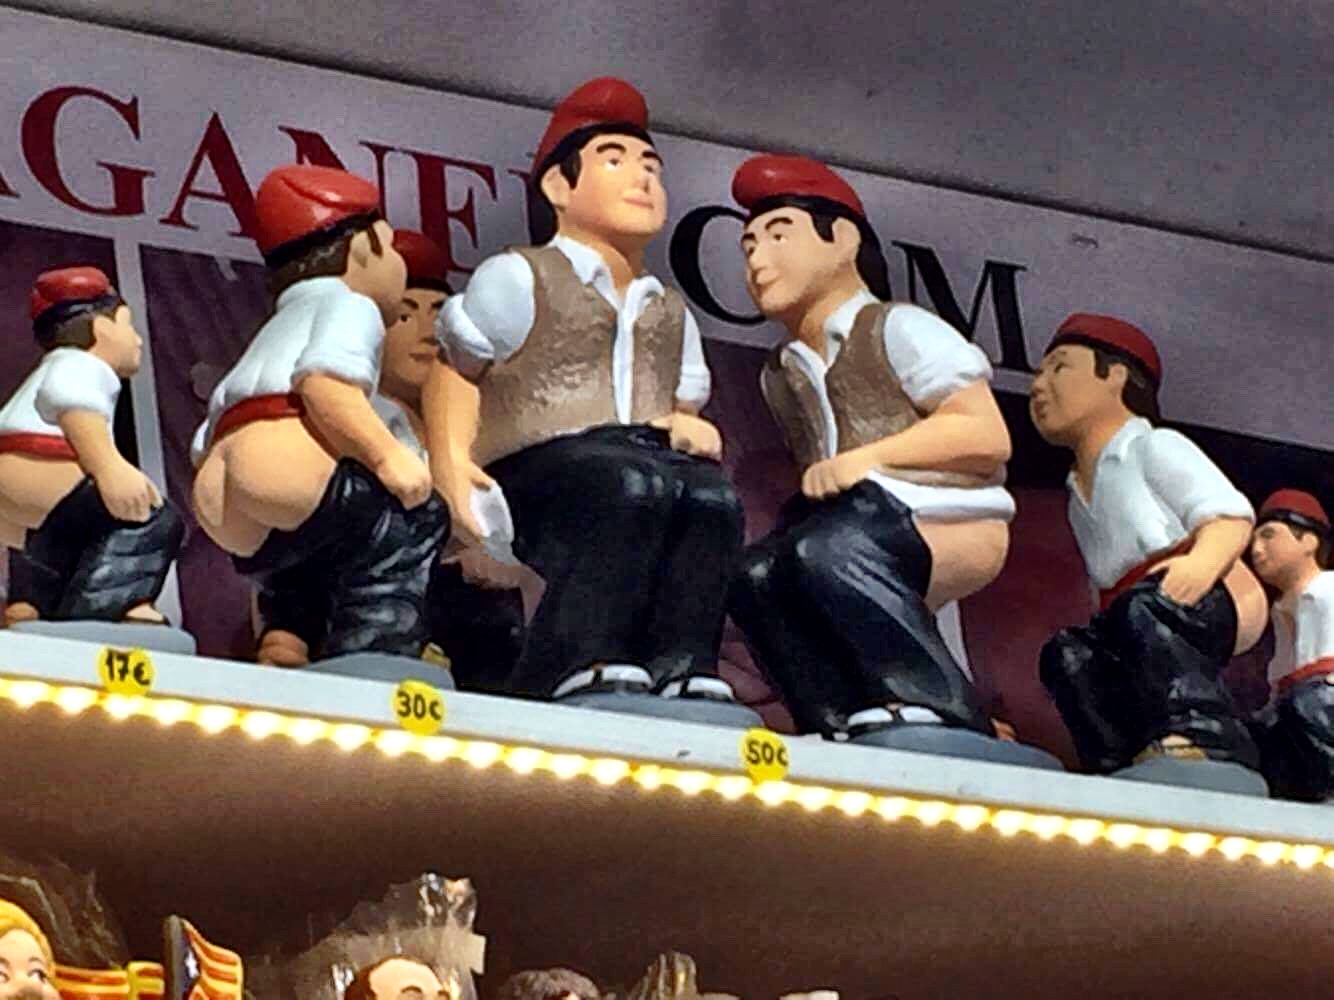 As hard as it might be to believe, this figurine of a man squatting and taking a poop, known as the Caganer, is actually placed in nativity scenes